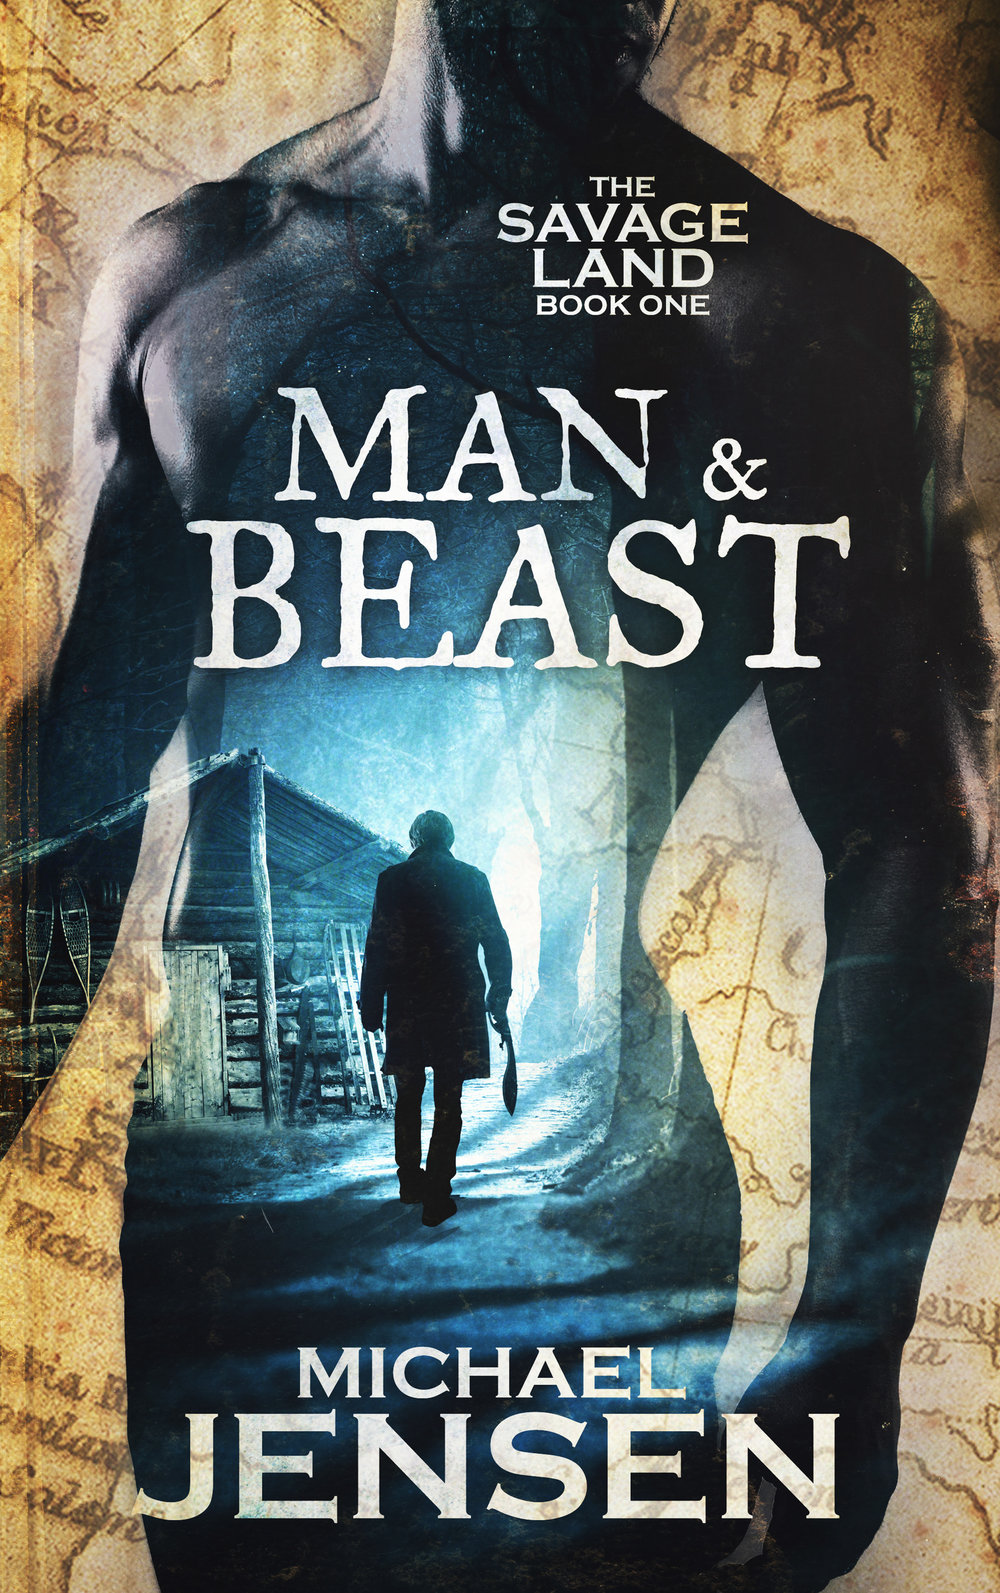 Man & Beast - Ebook.jpg